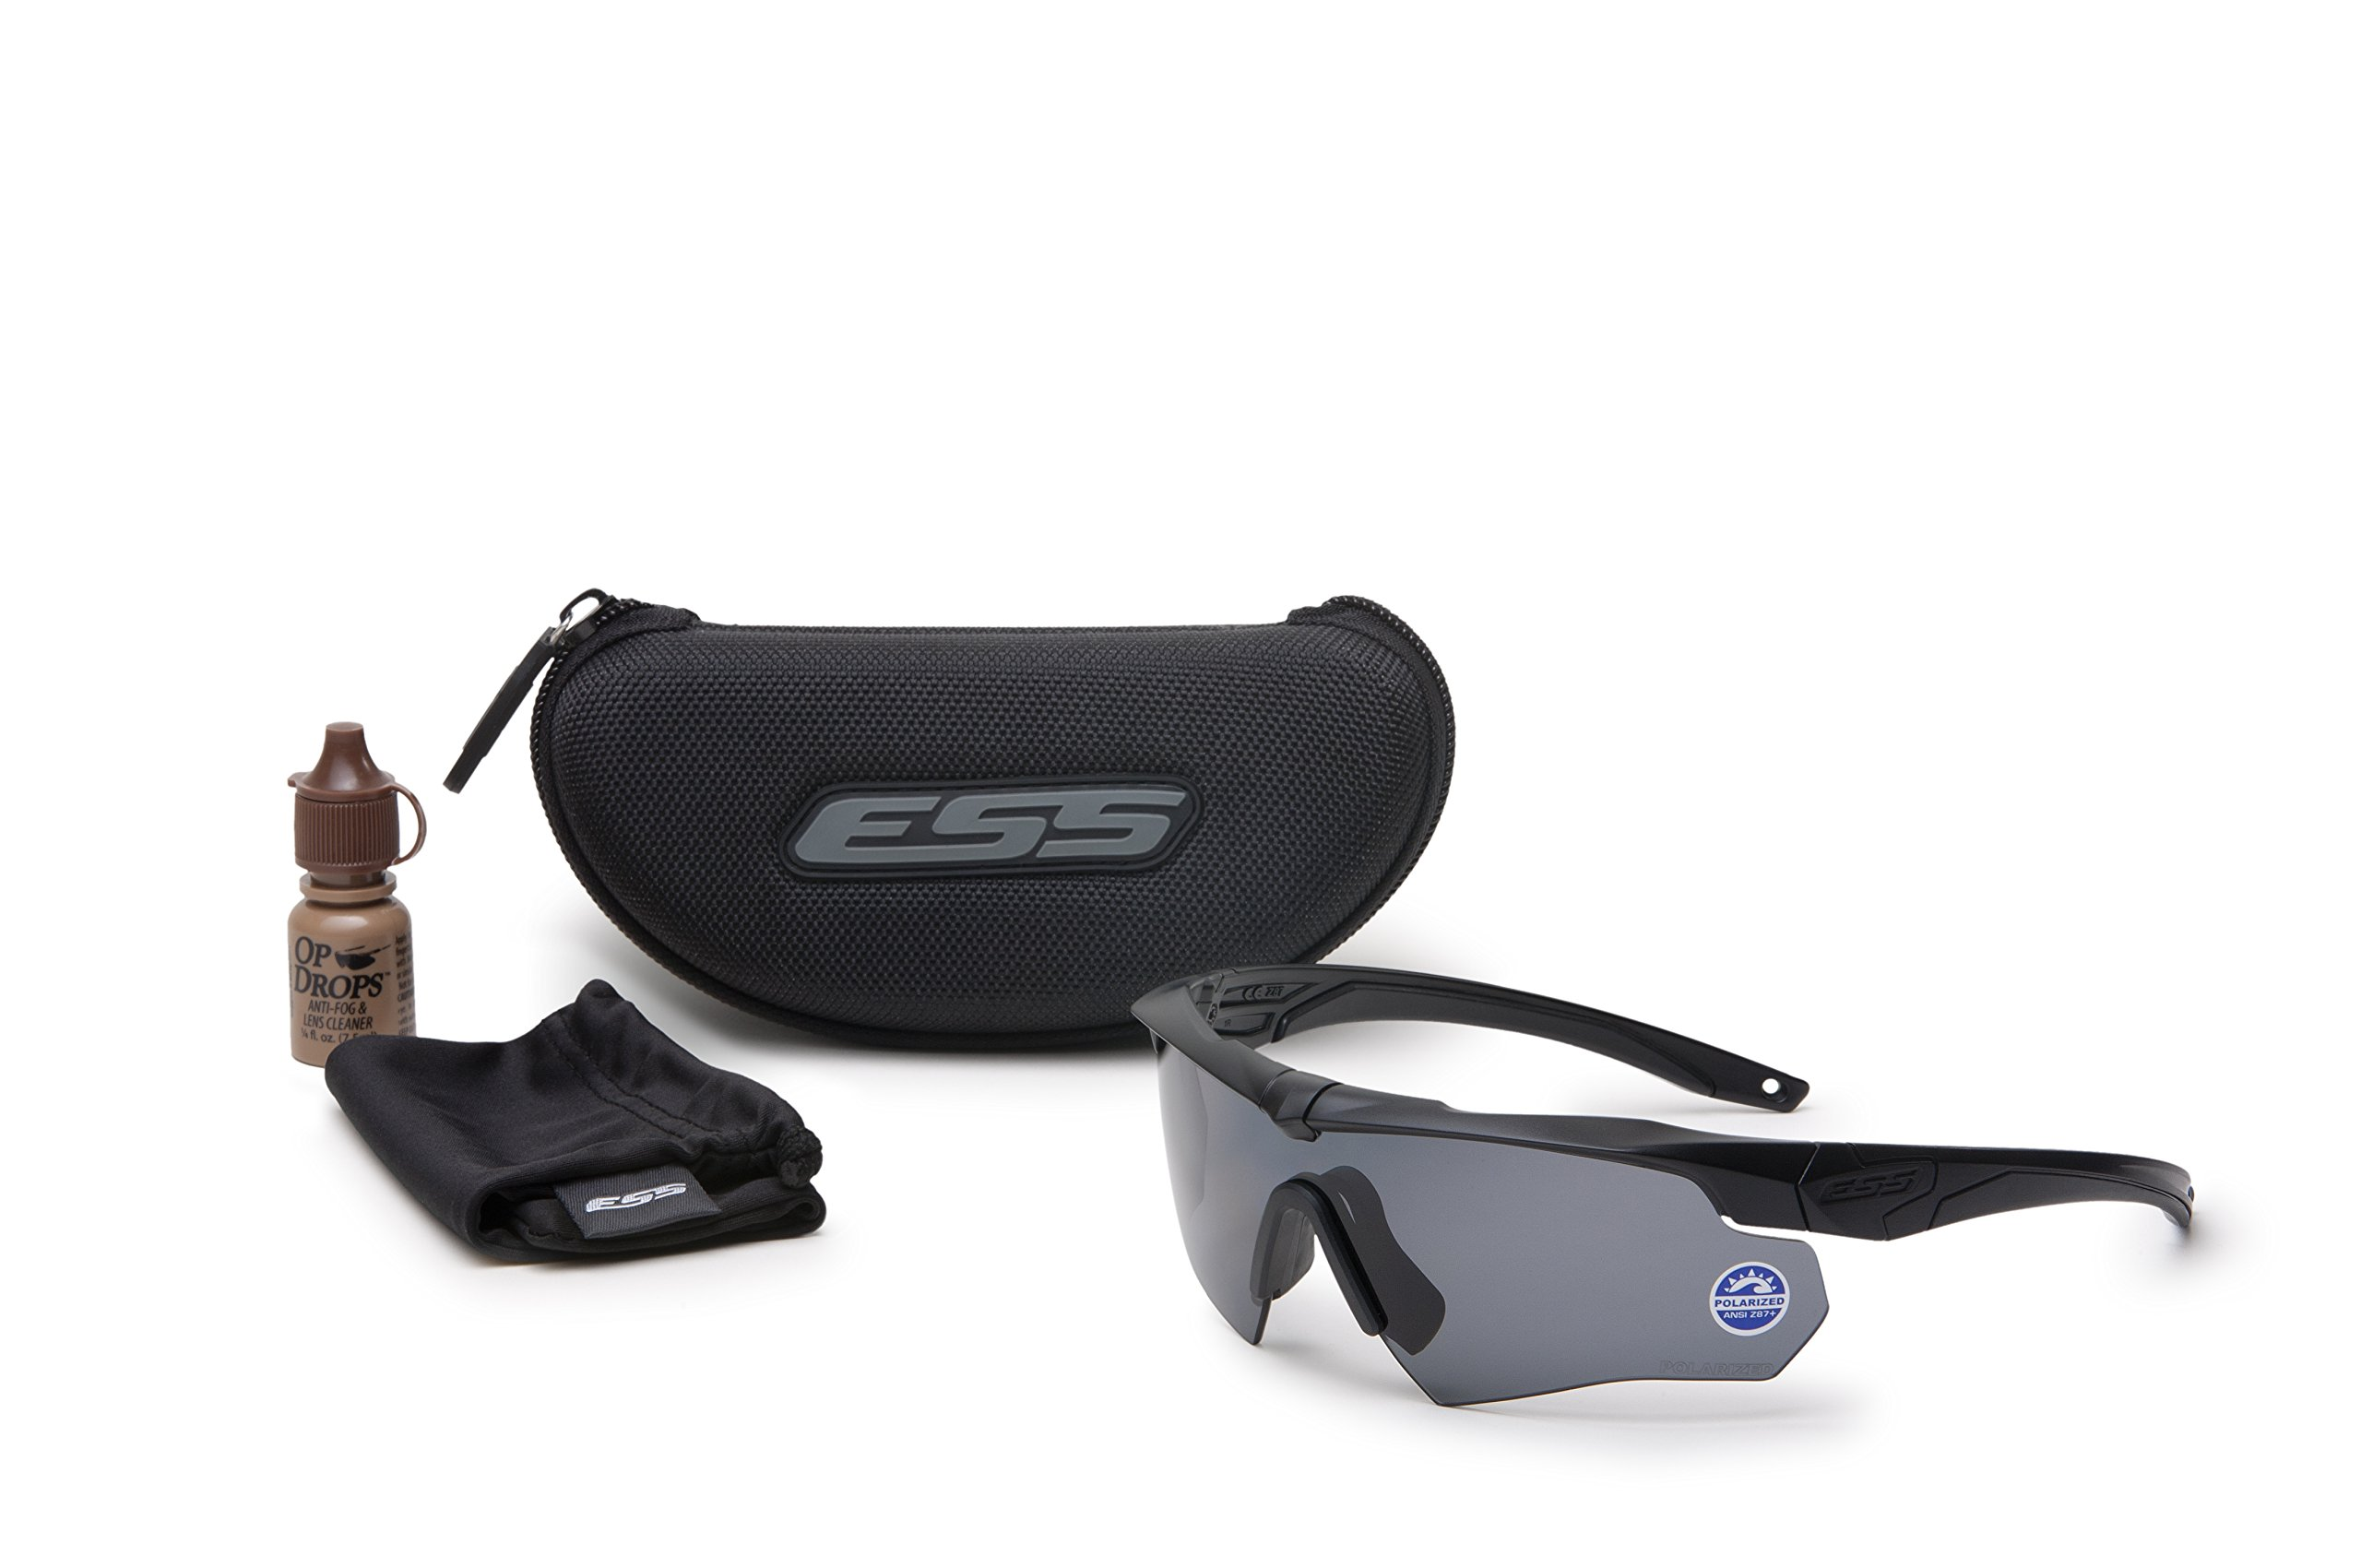 ESS 740-0494 Ess Polarized Gray Polarized Safety Glasses, Scratch-Resistant by Ess